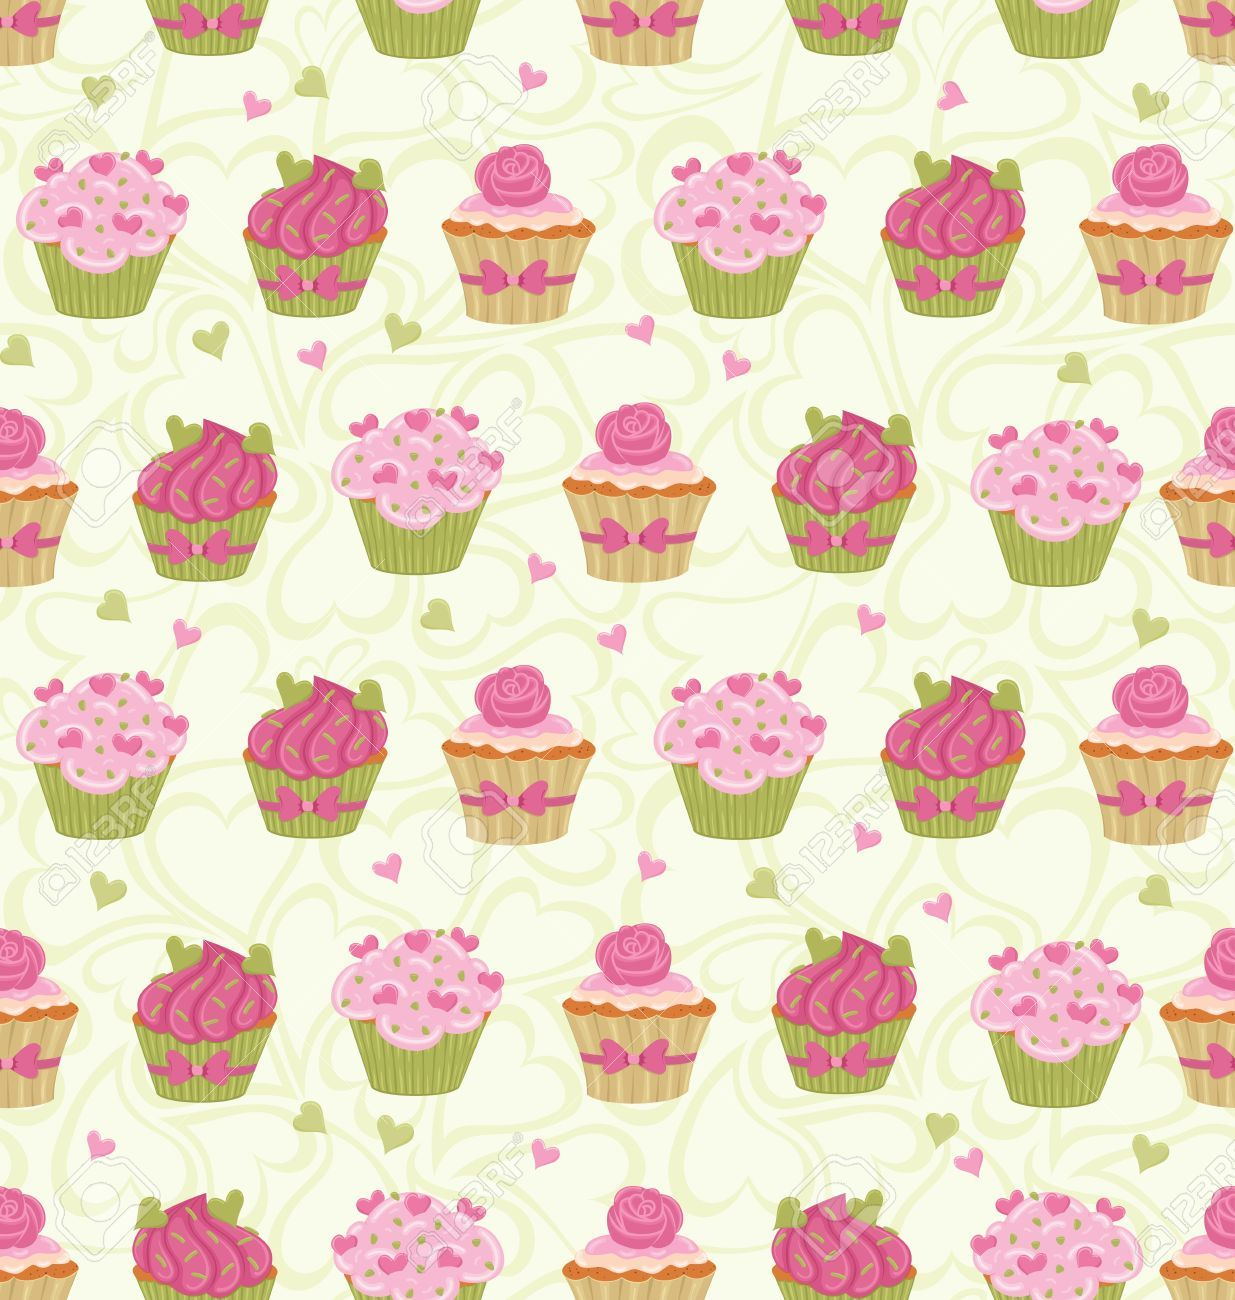 Cupcake Wallpaper: 17766358-Seamless-pattern-made-of-cupcakes-and-hearts